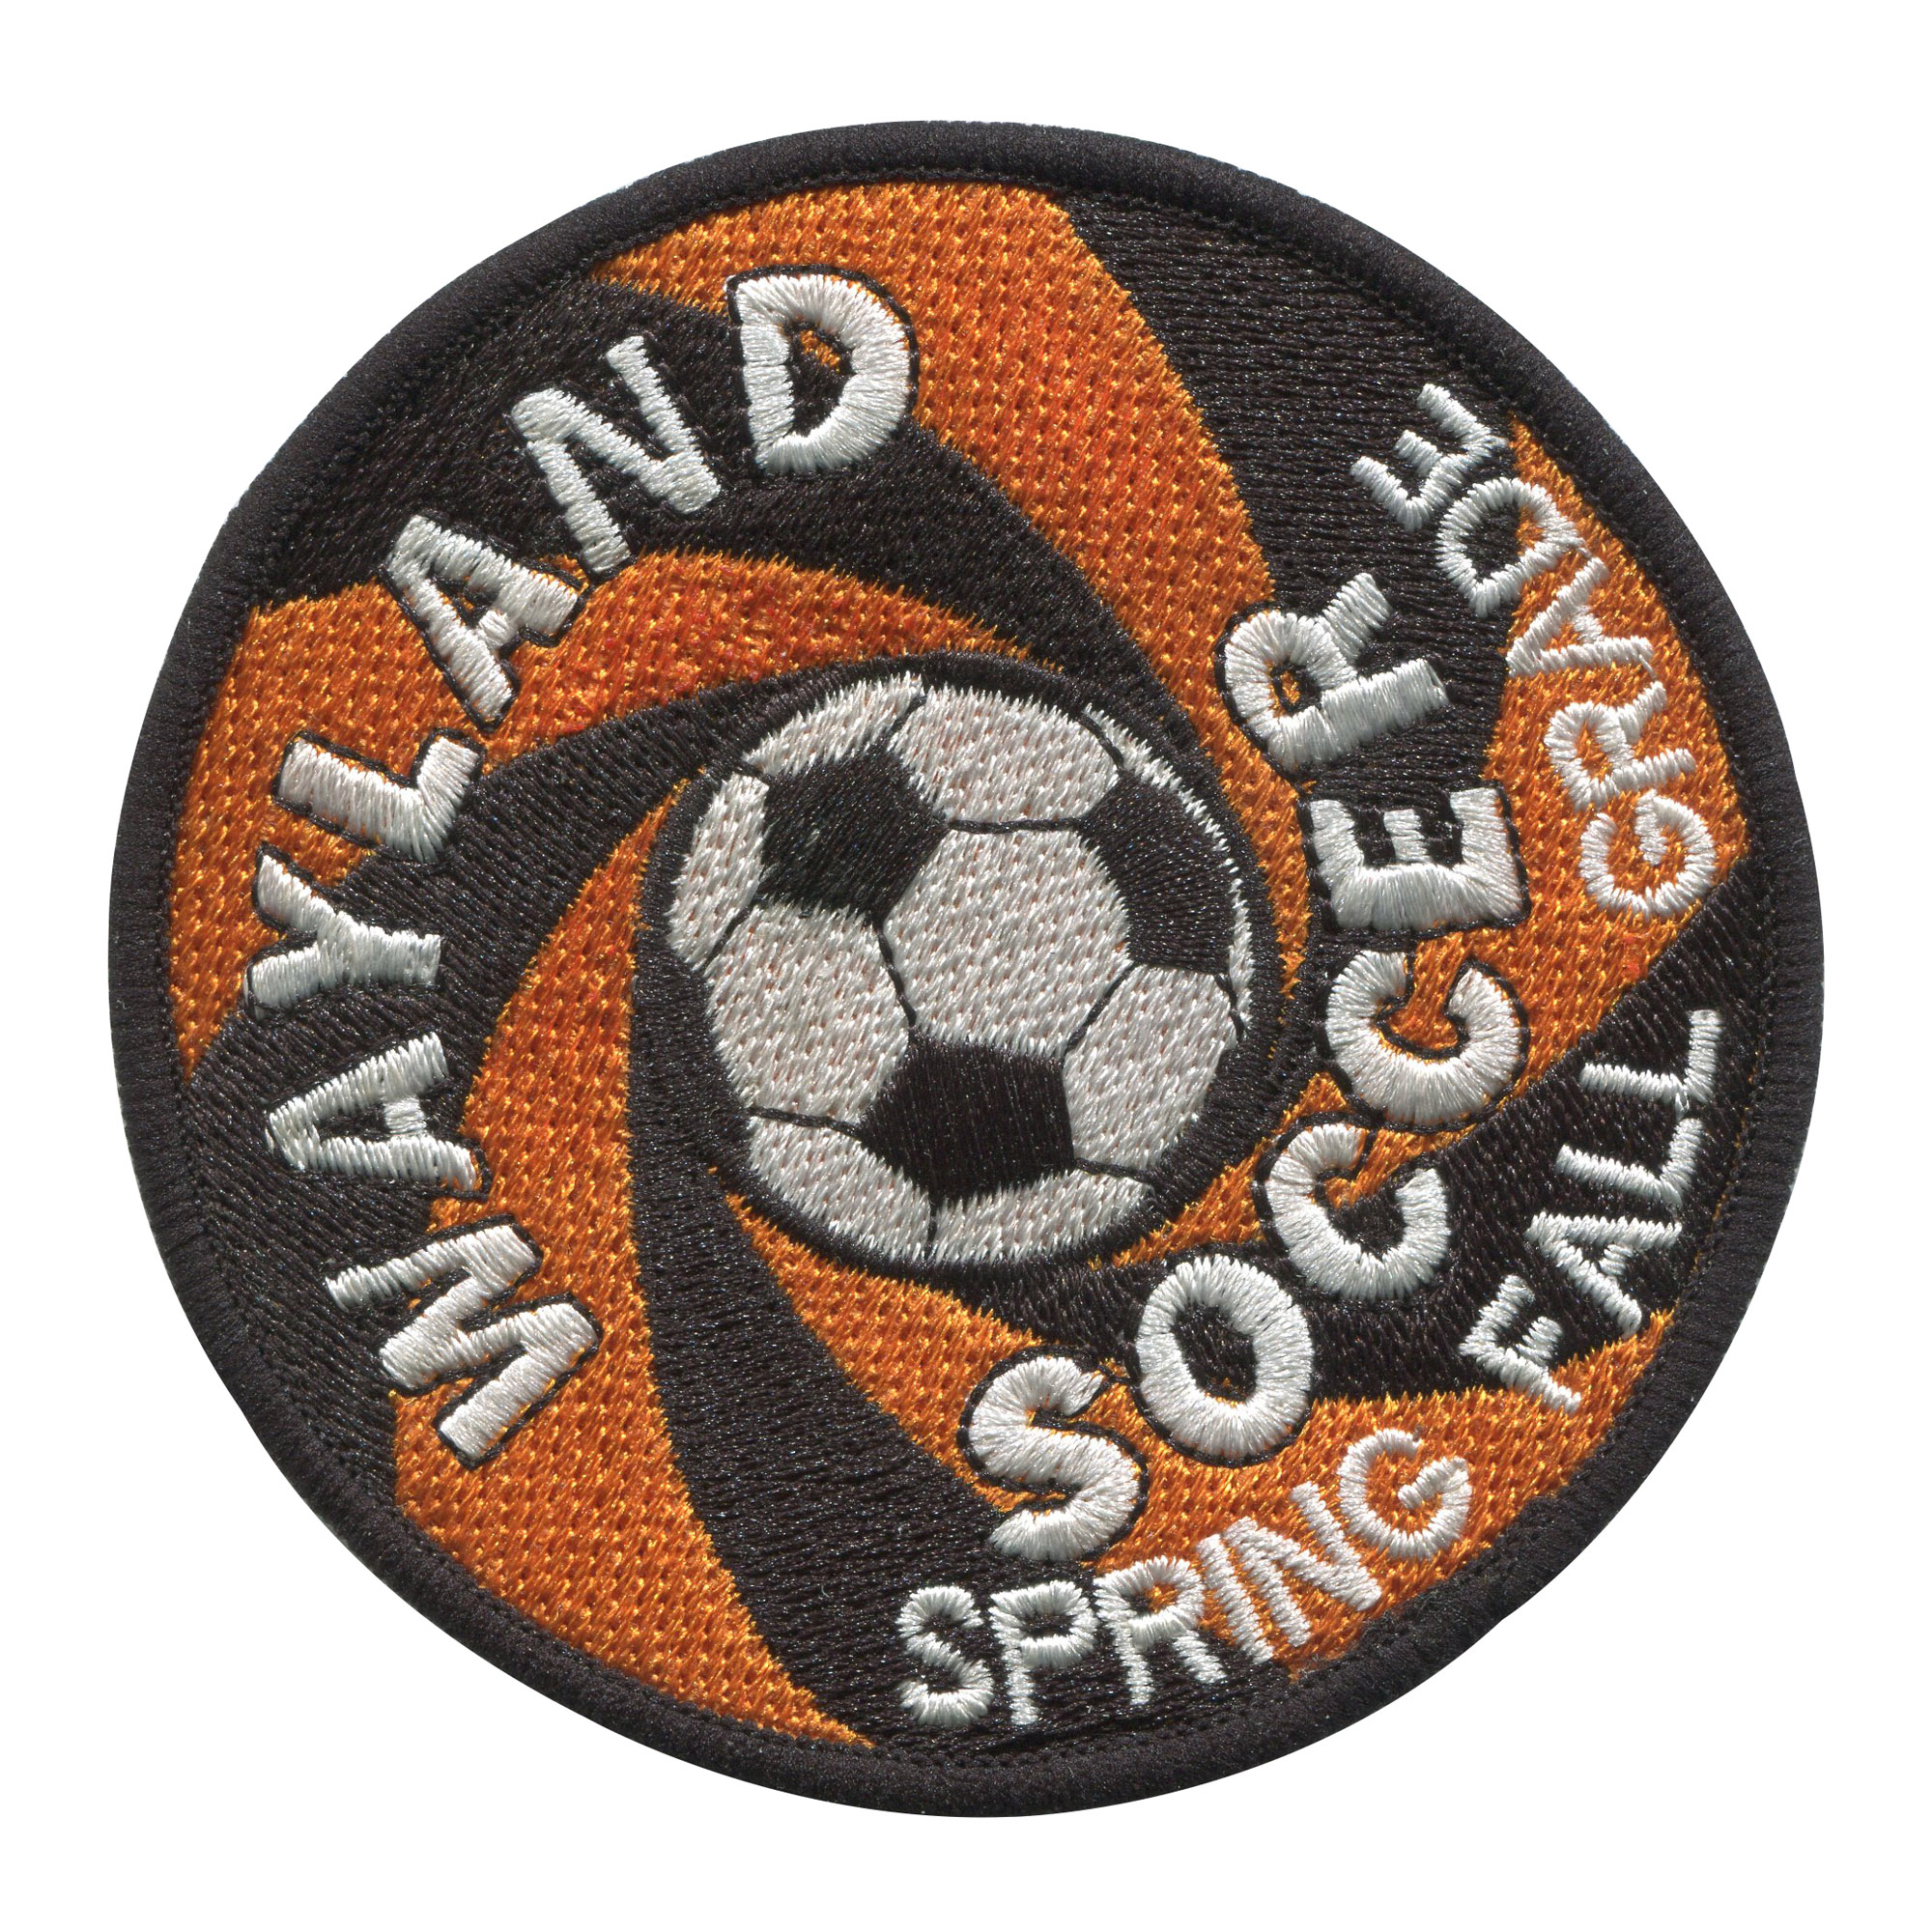 Soccer patches for teams